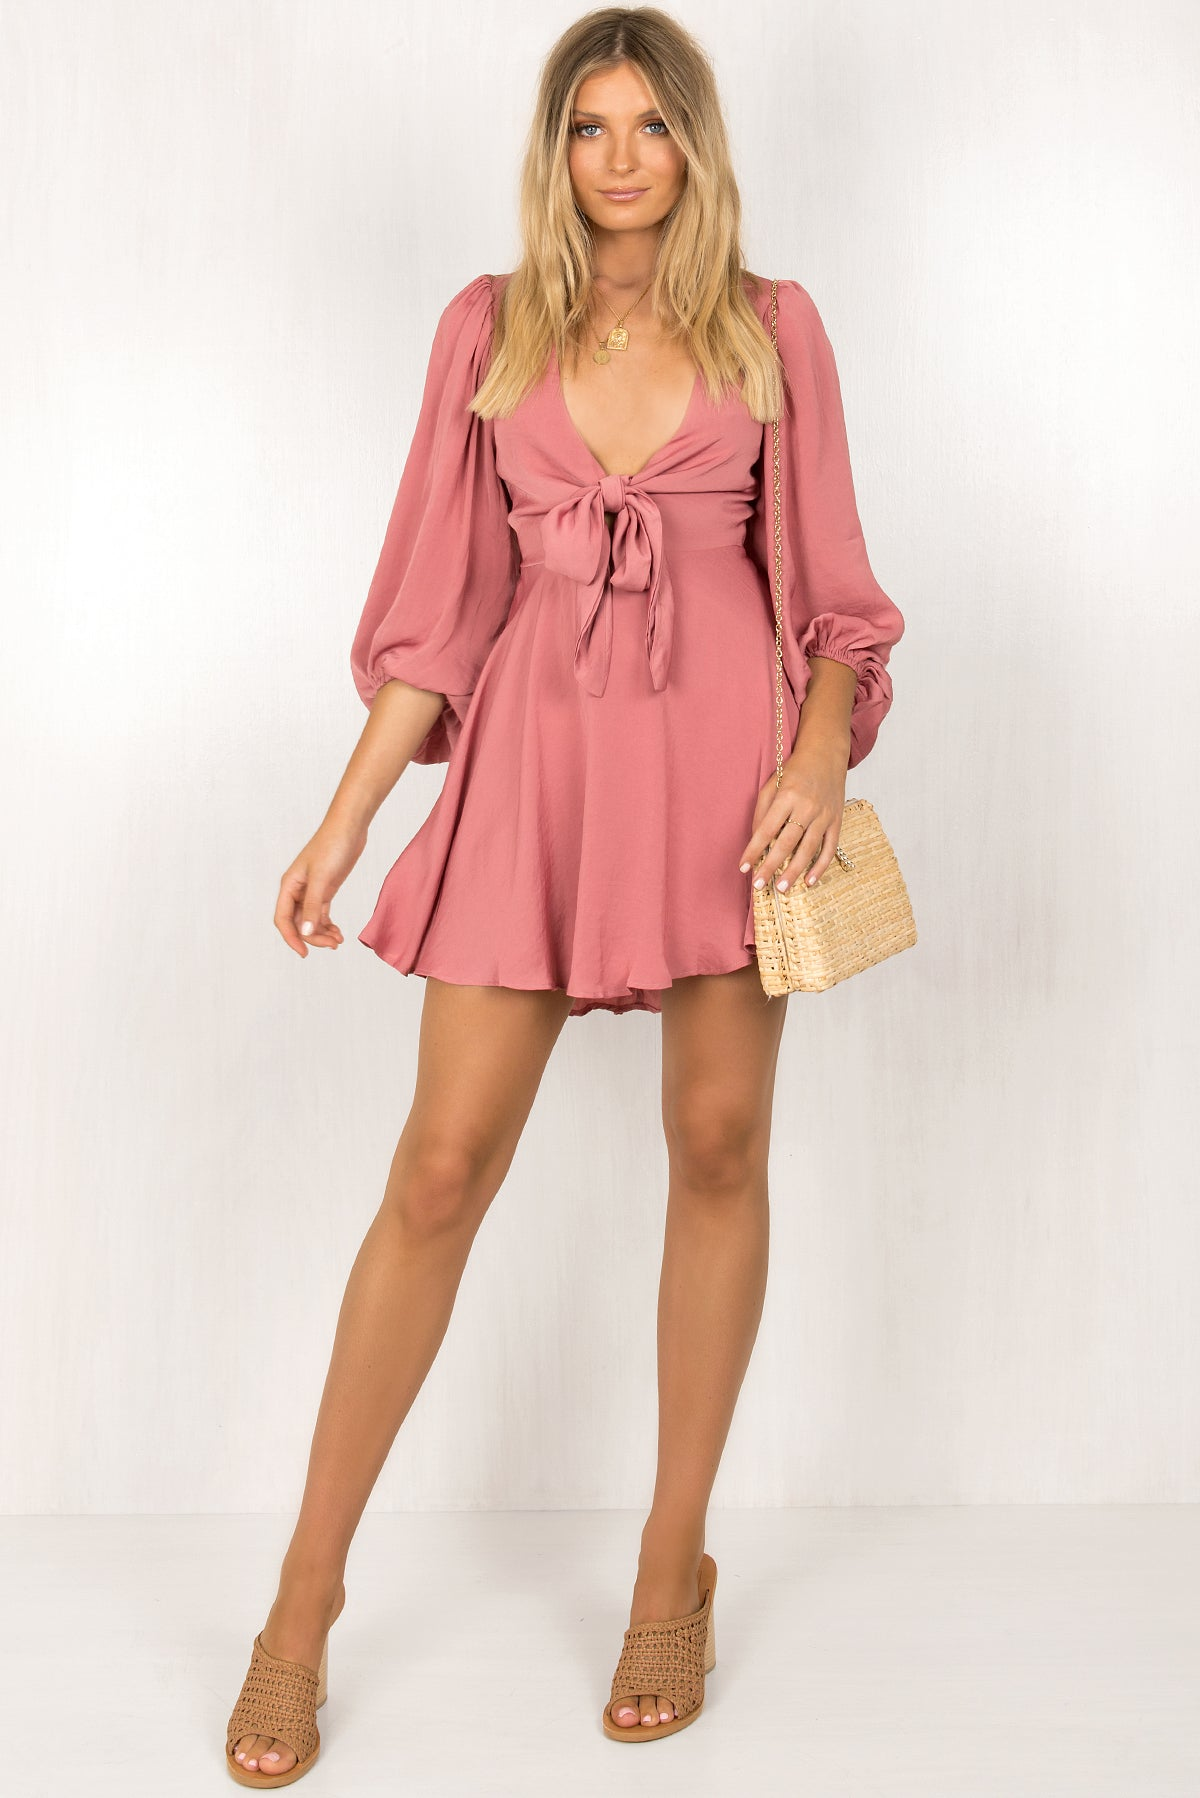 Nicolette Dress / Rose